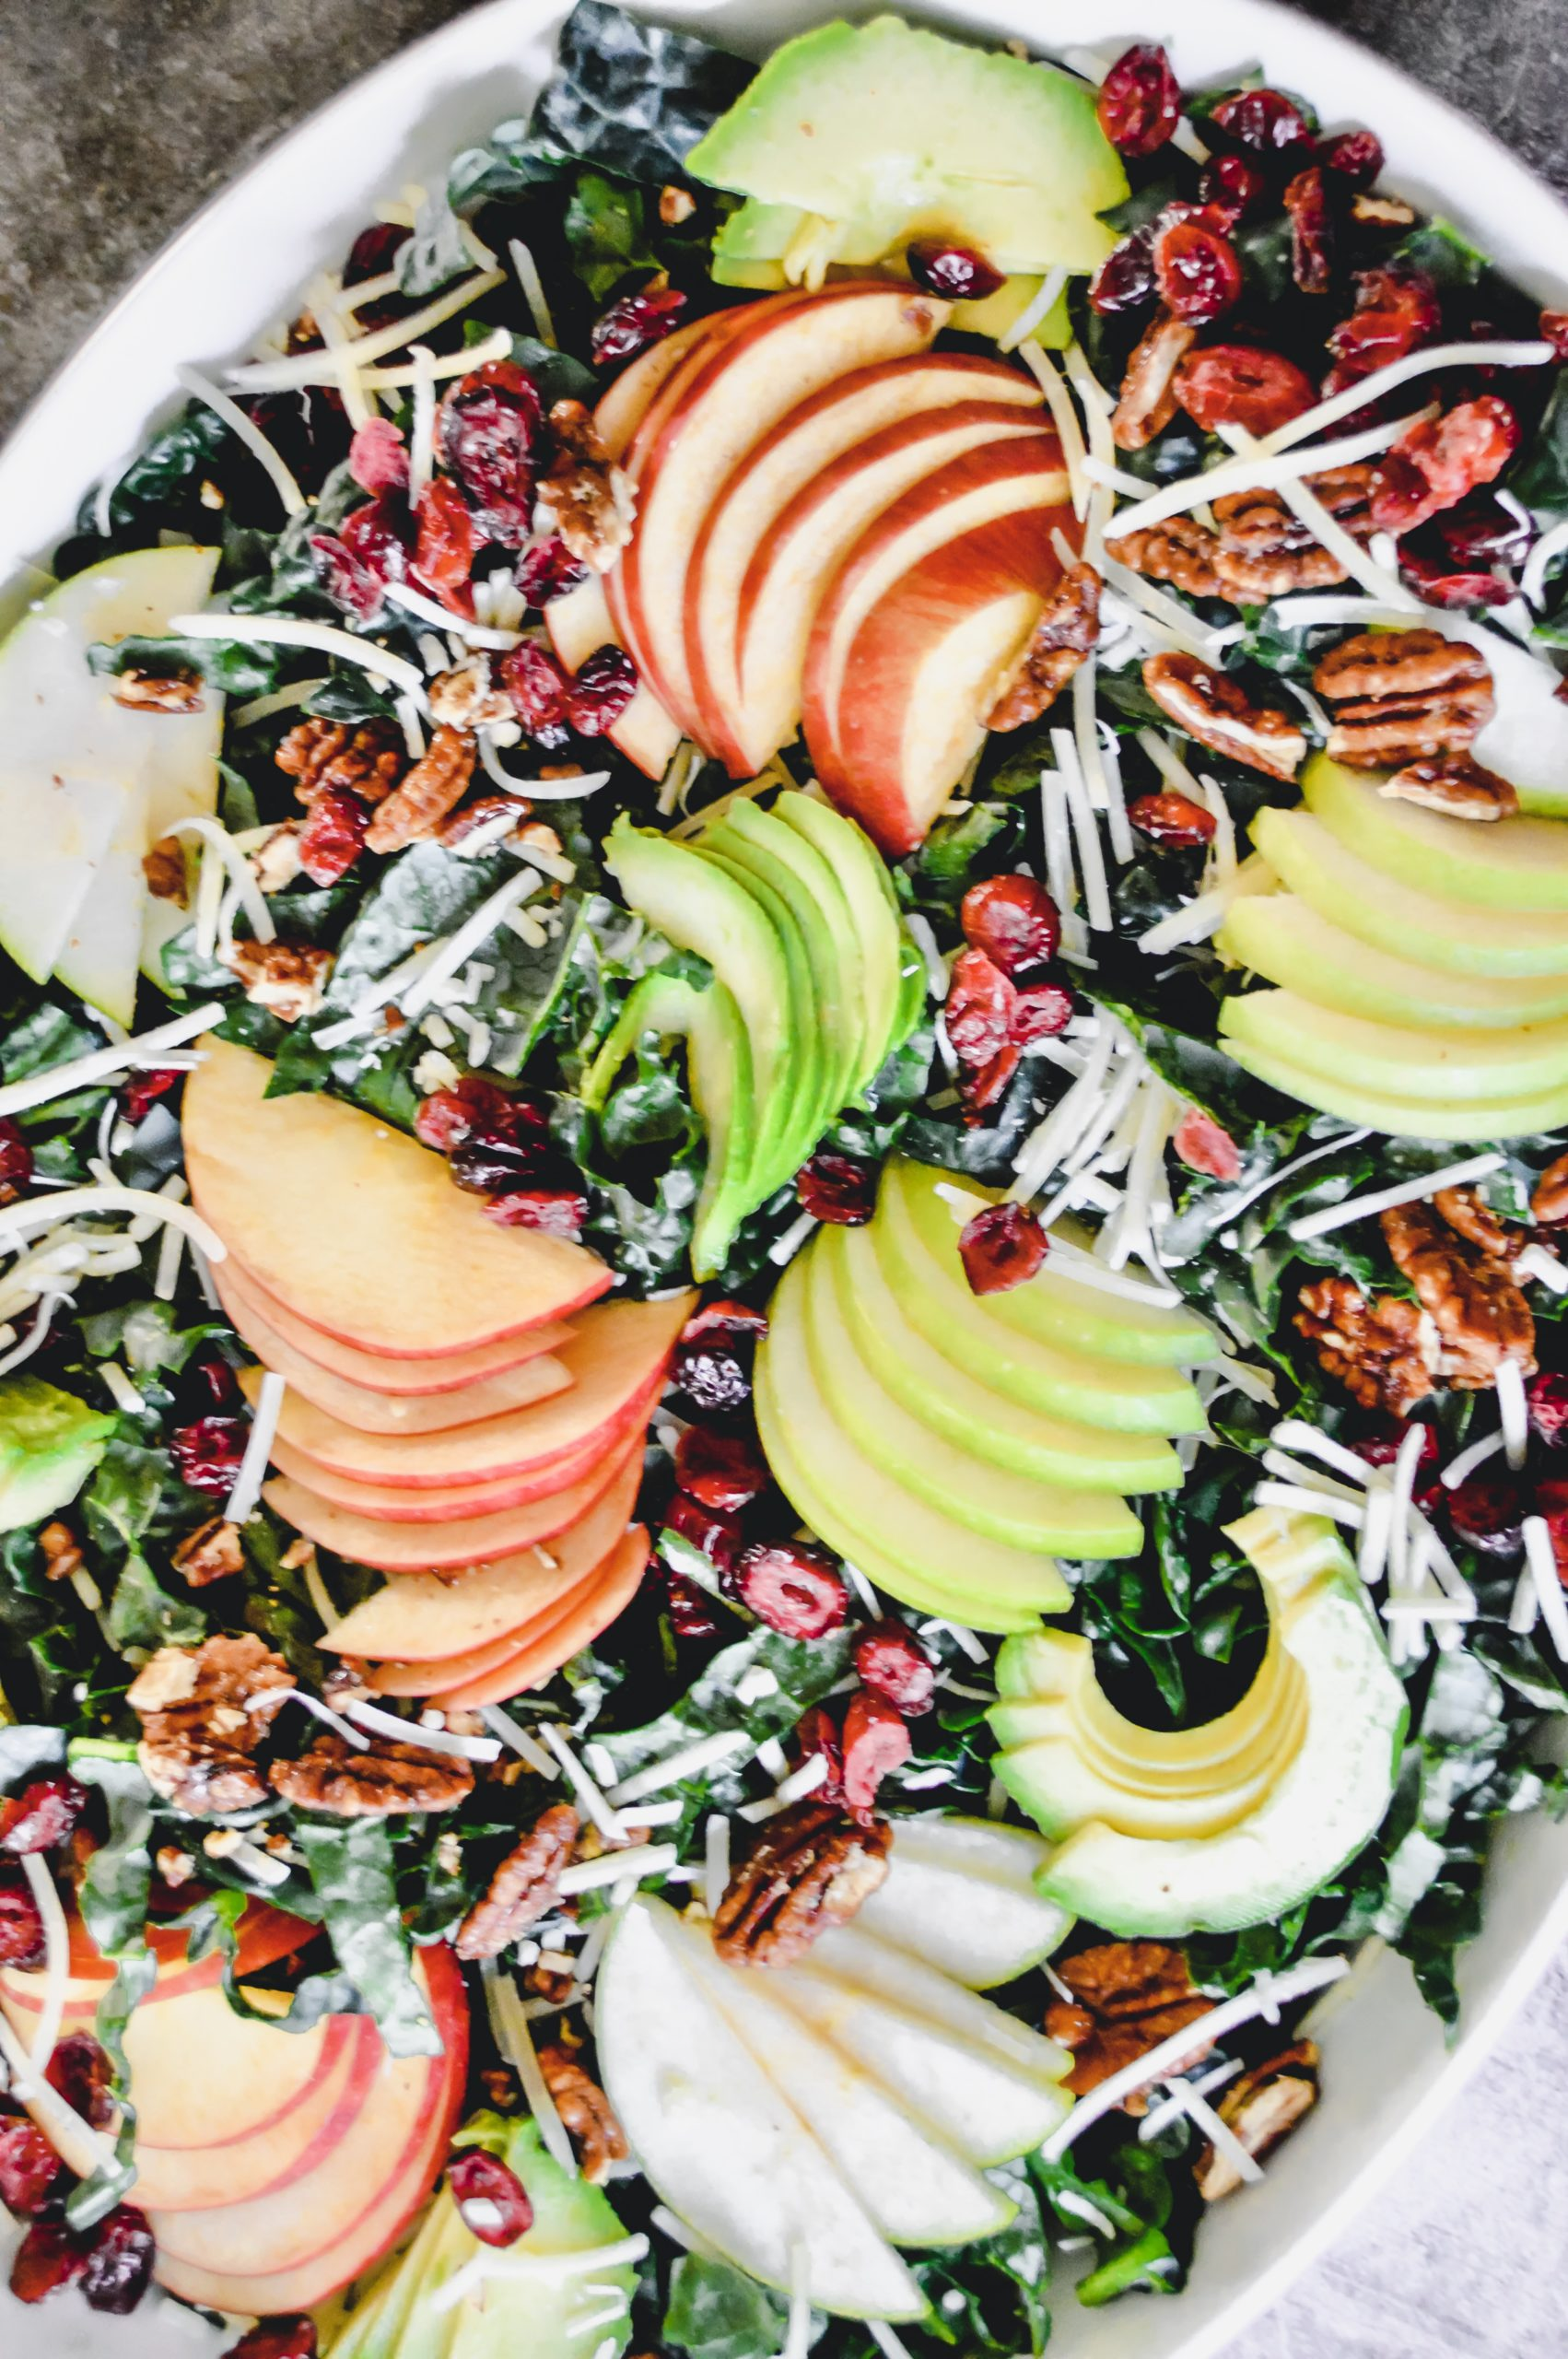 Tuscan Kale Salad with Apples